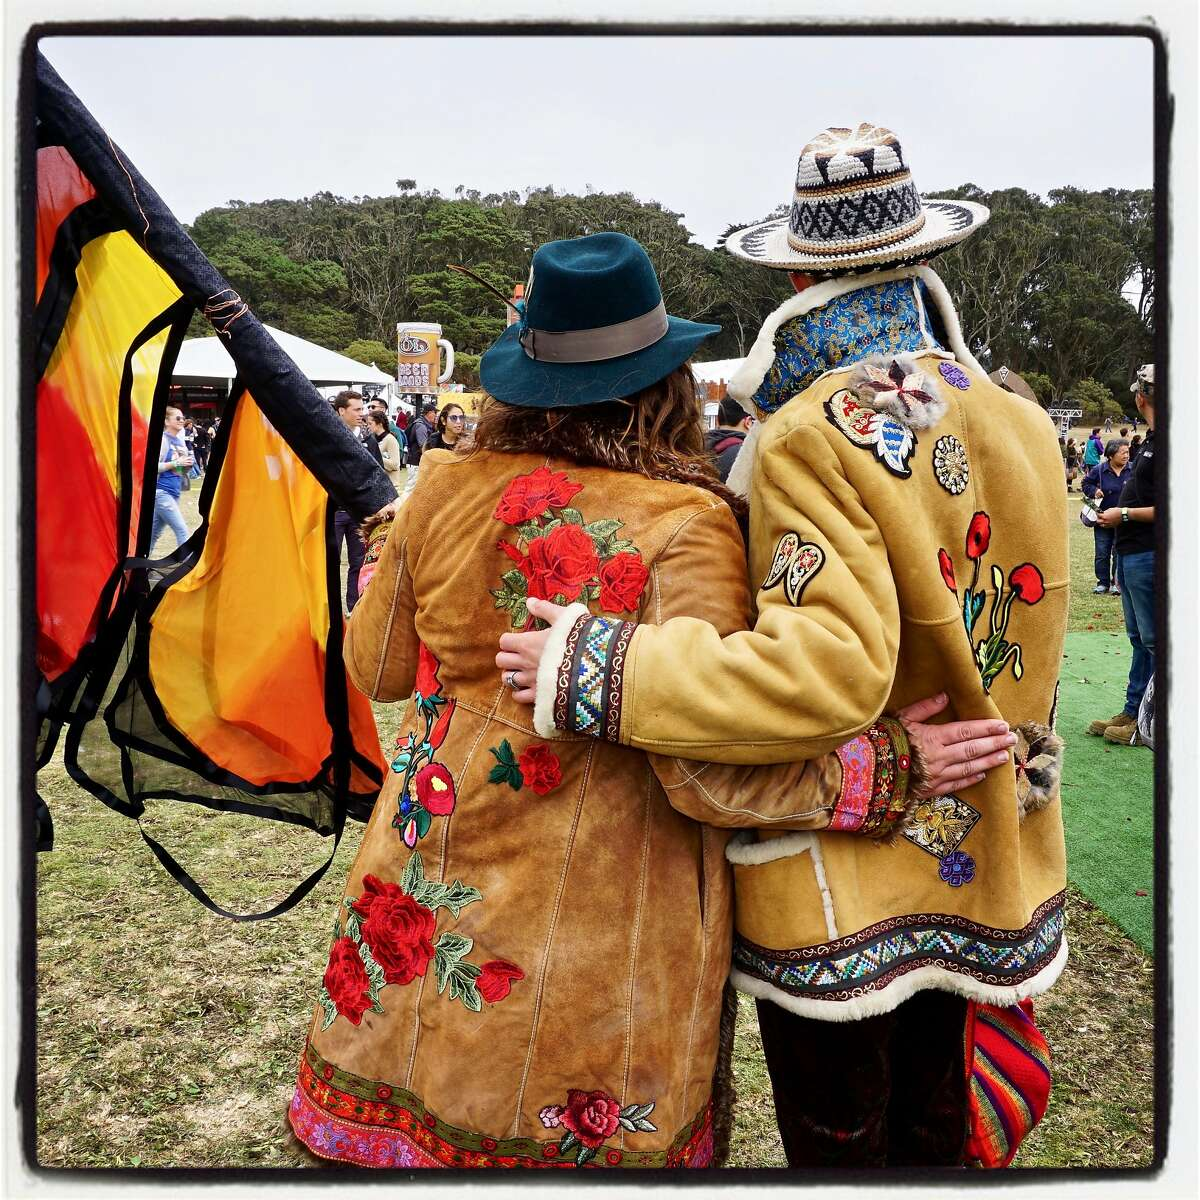 Chelsea Argabrite (left) and Jonathan Bloch wear flea market jackets they hand-embellished at Outside Lands. Aug. 13, 2017.